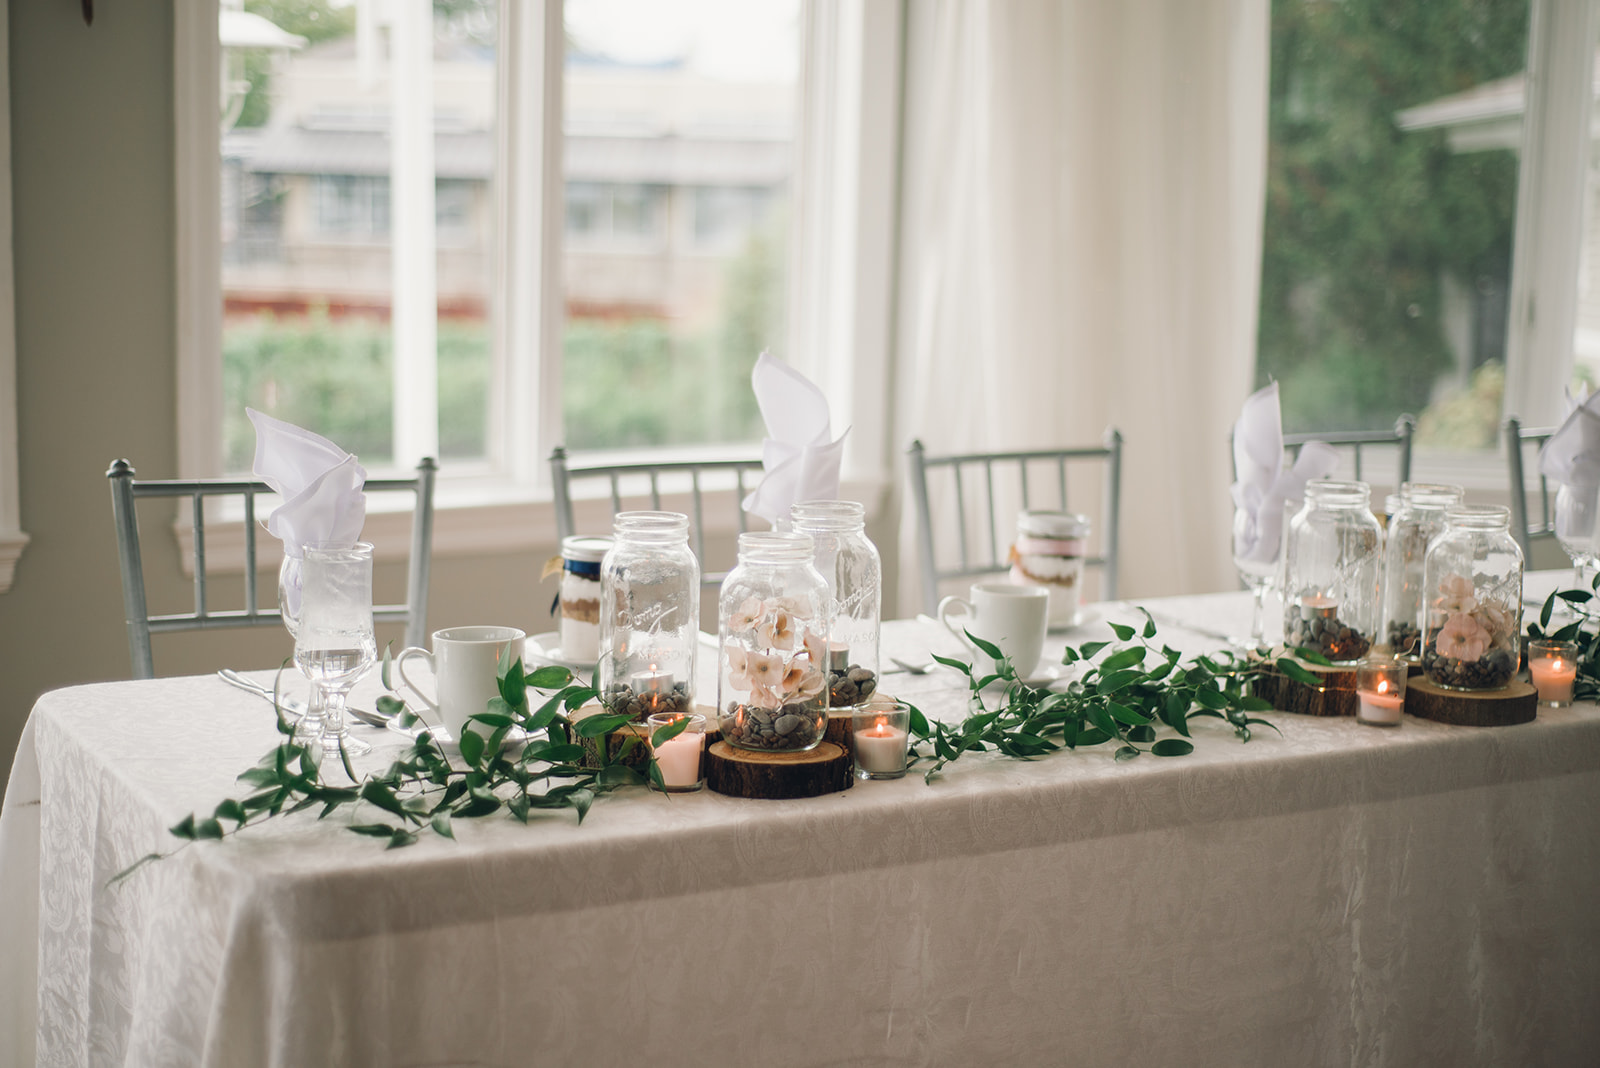 Photography by Allicia of Alabaster Jar Photography